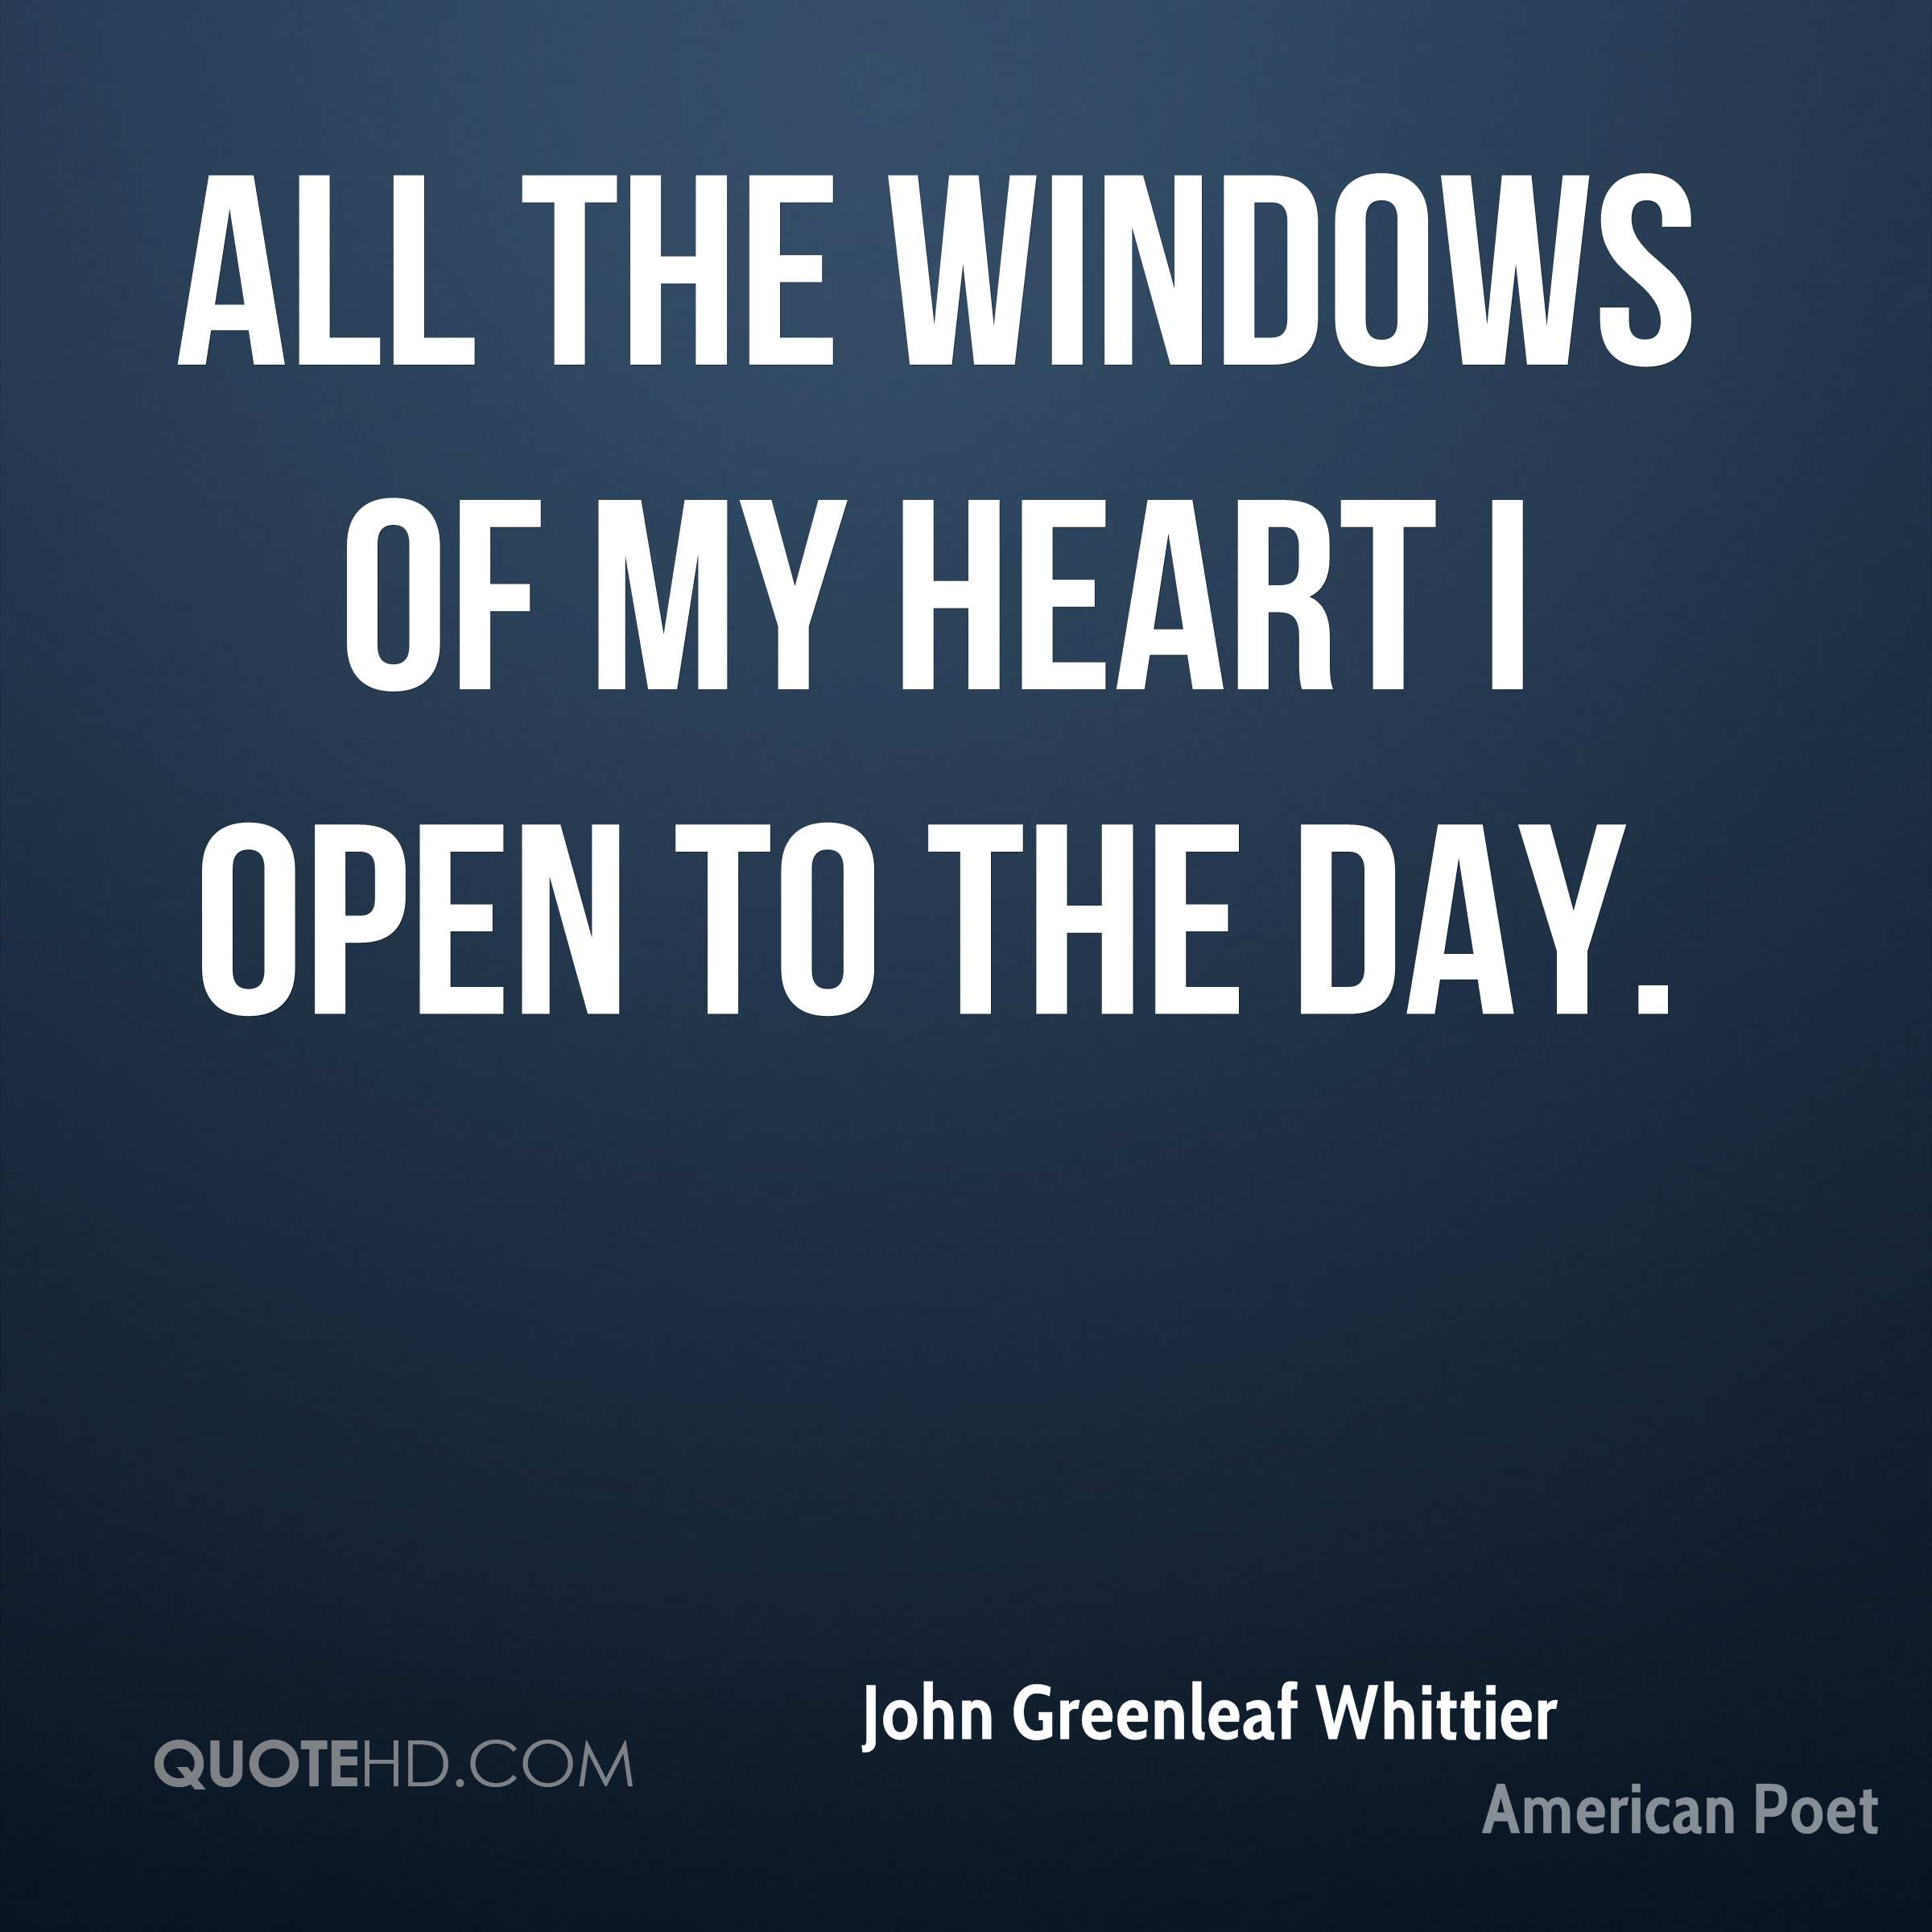 All the windows of my heart I open to the day.